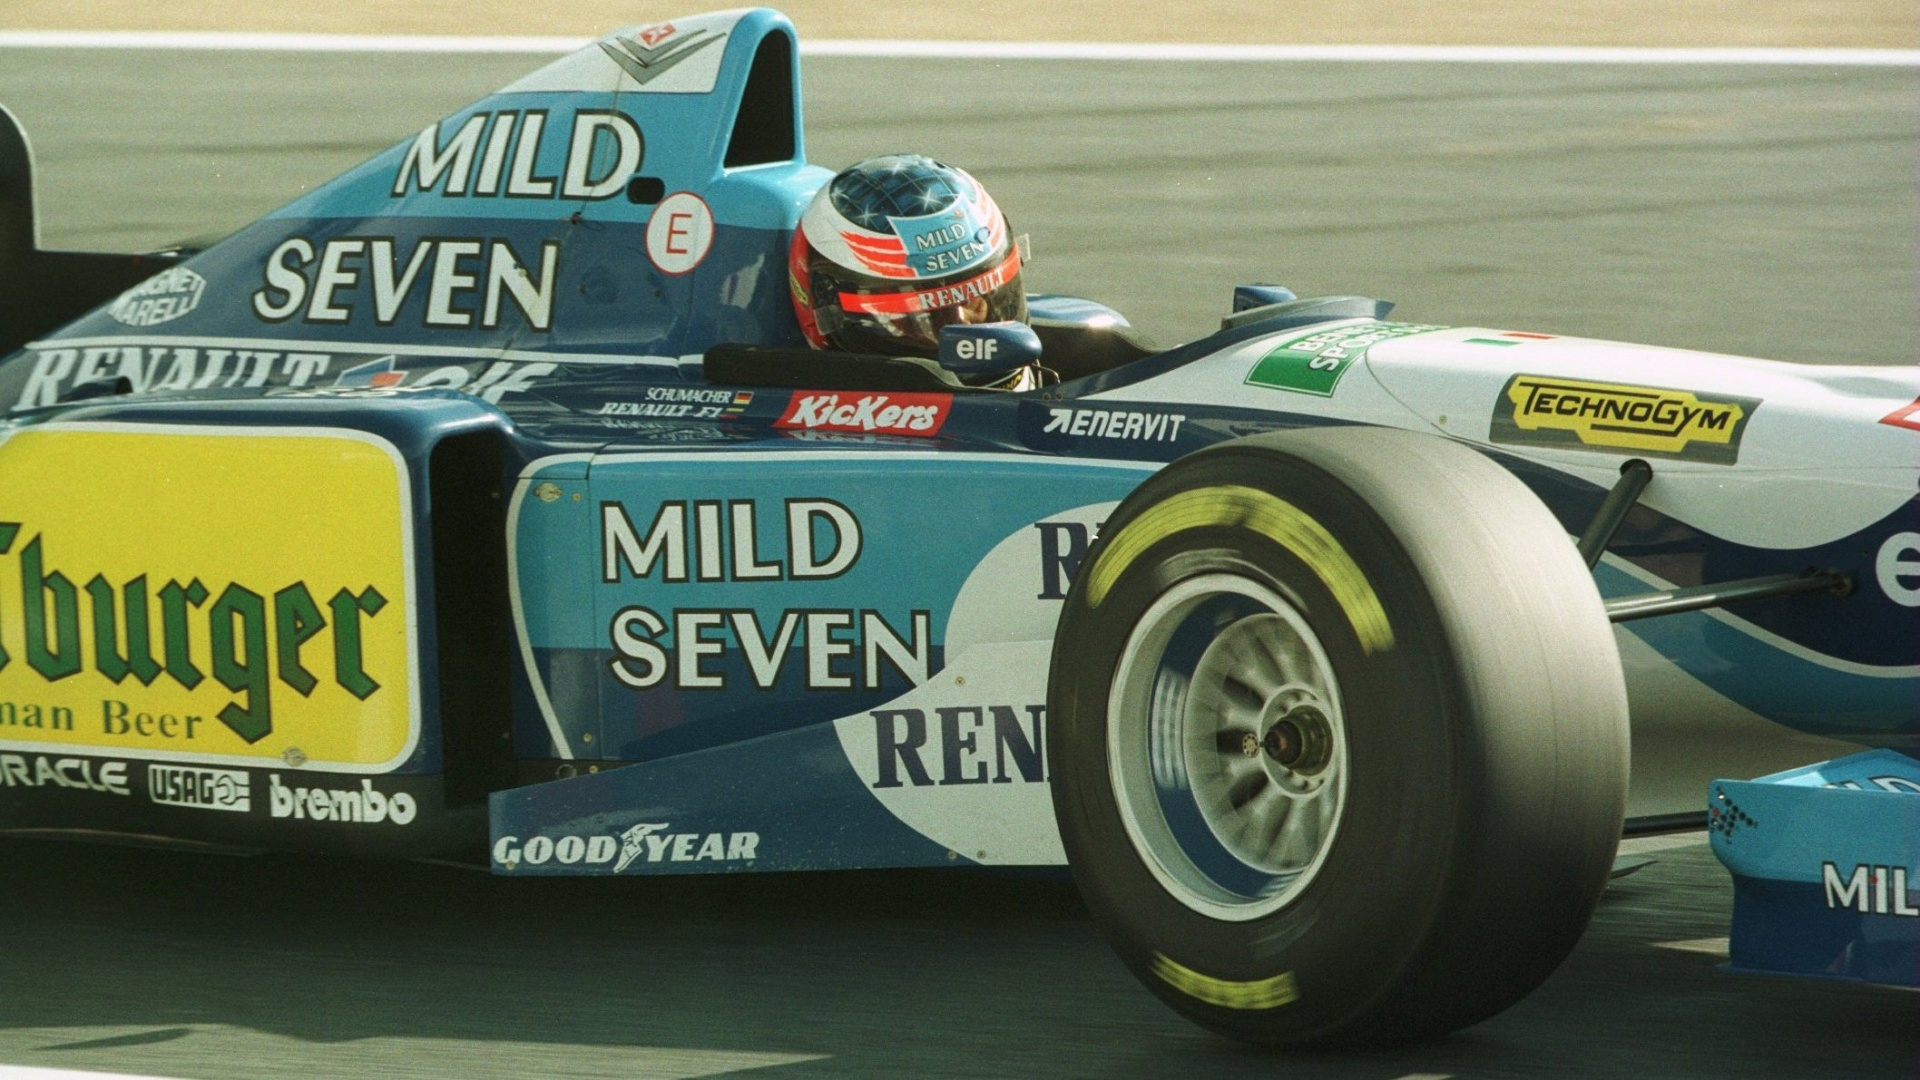 Michael Schumacher em ação no GP do Pacífico de 1995